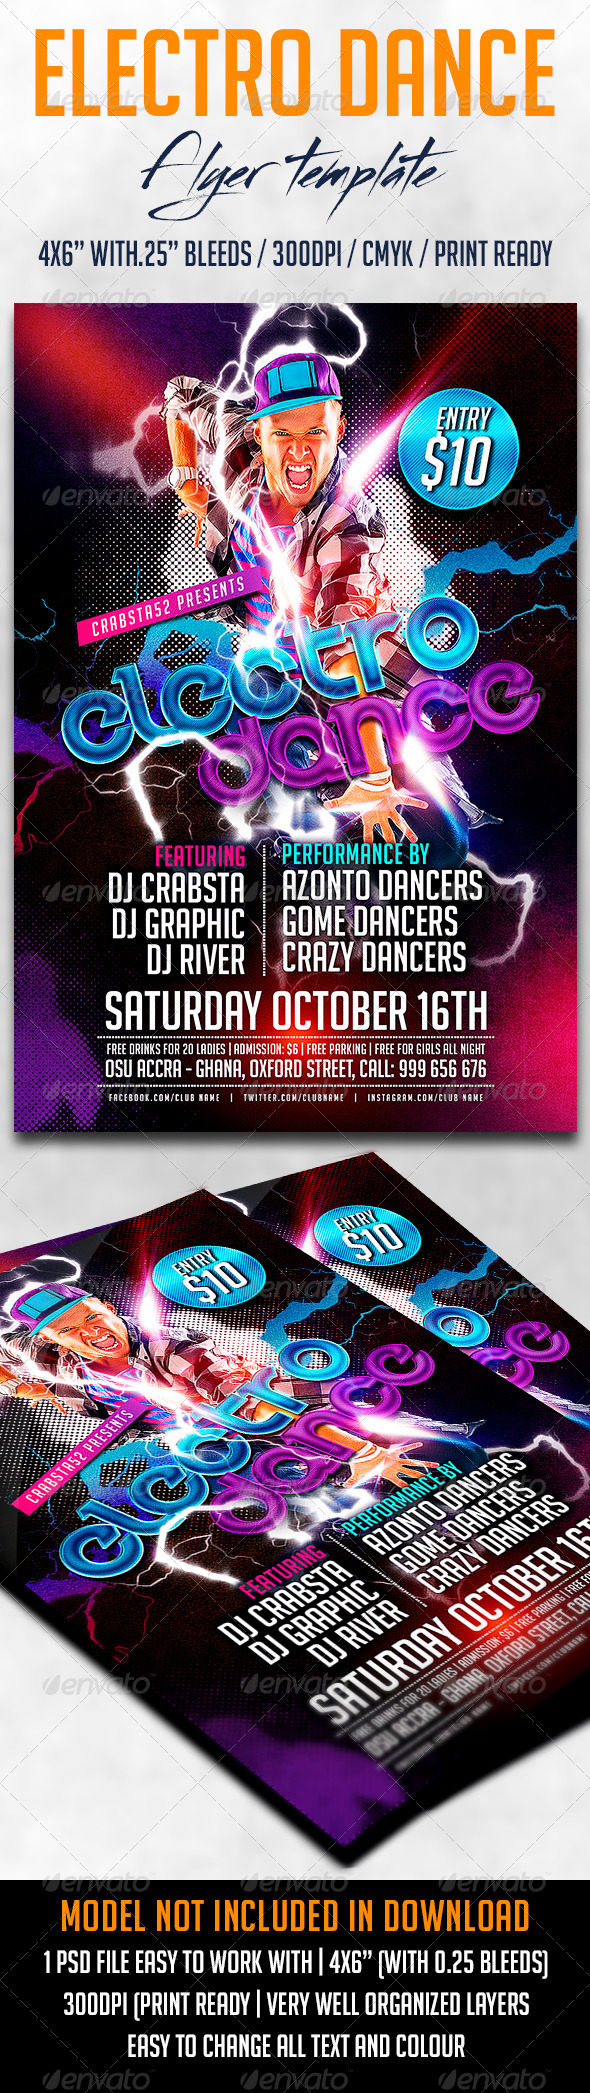 GraphicRiver Electro Dance Flyer Template 8734130